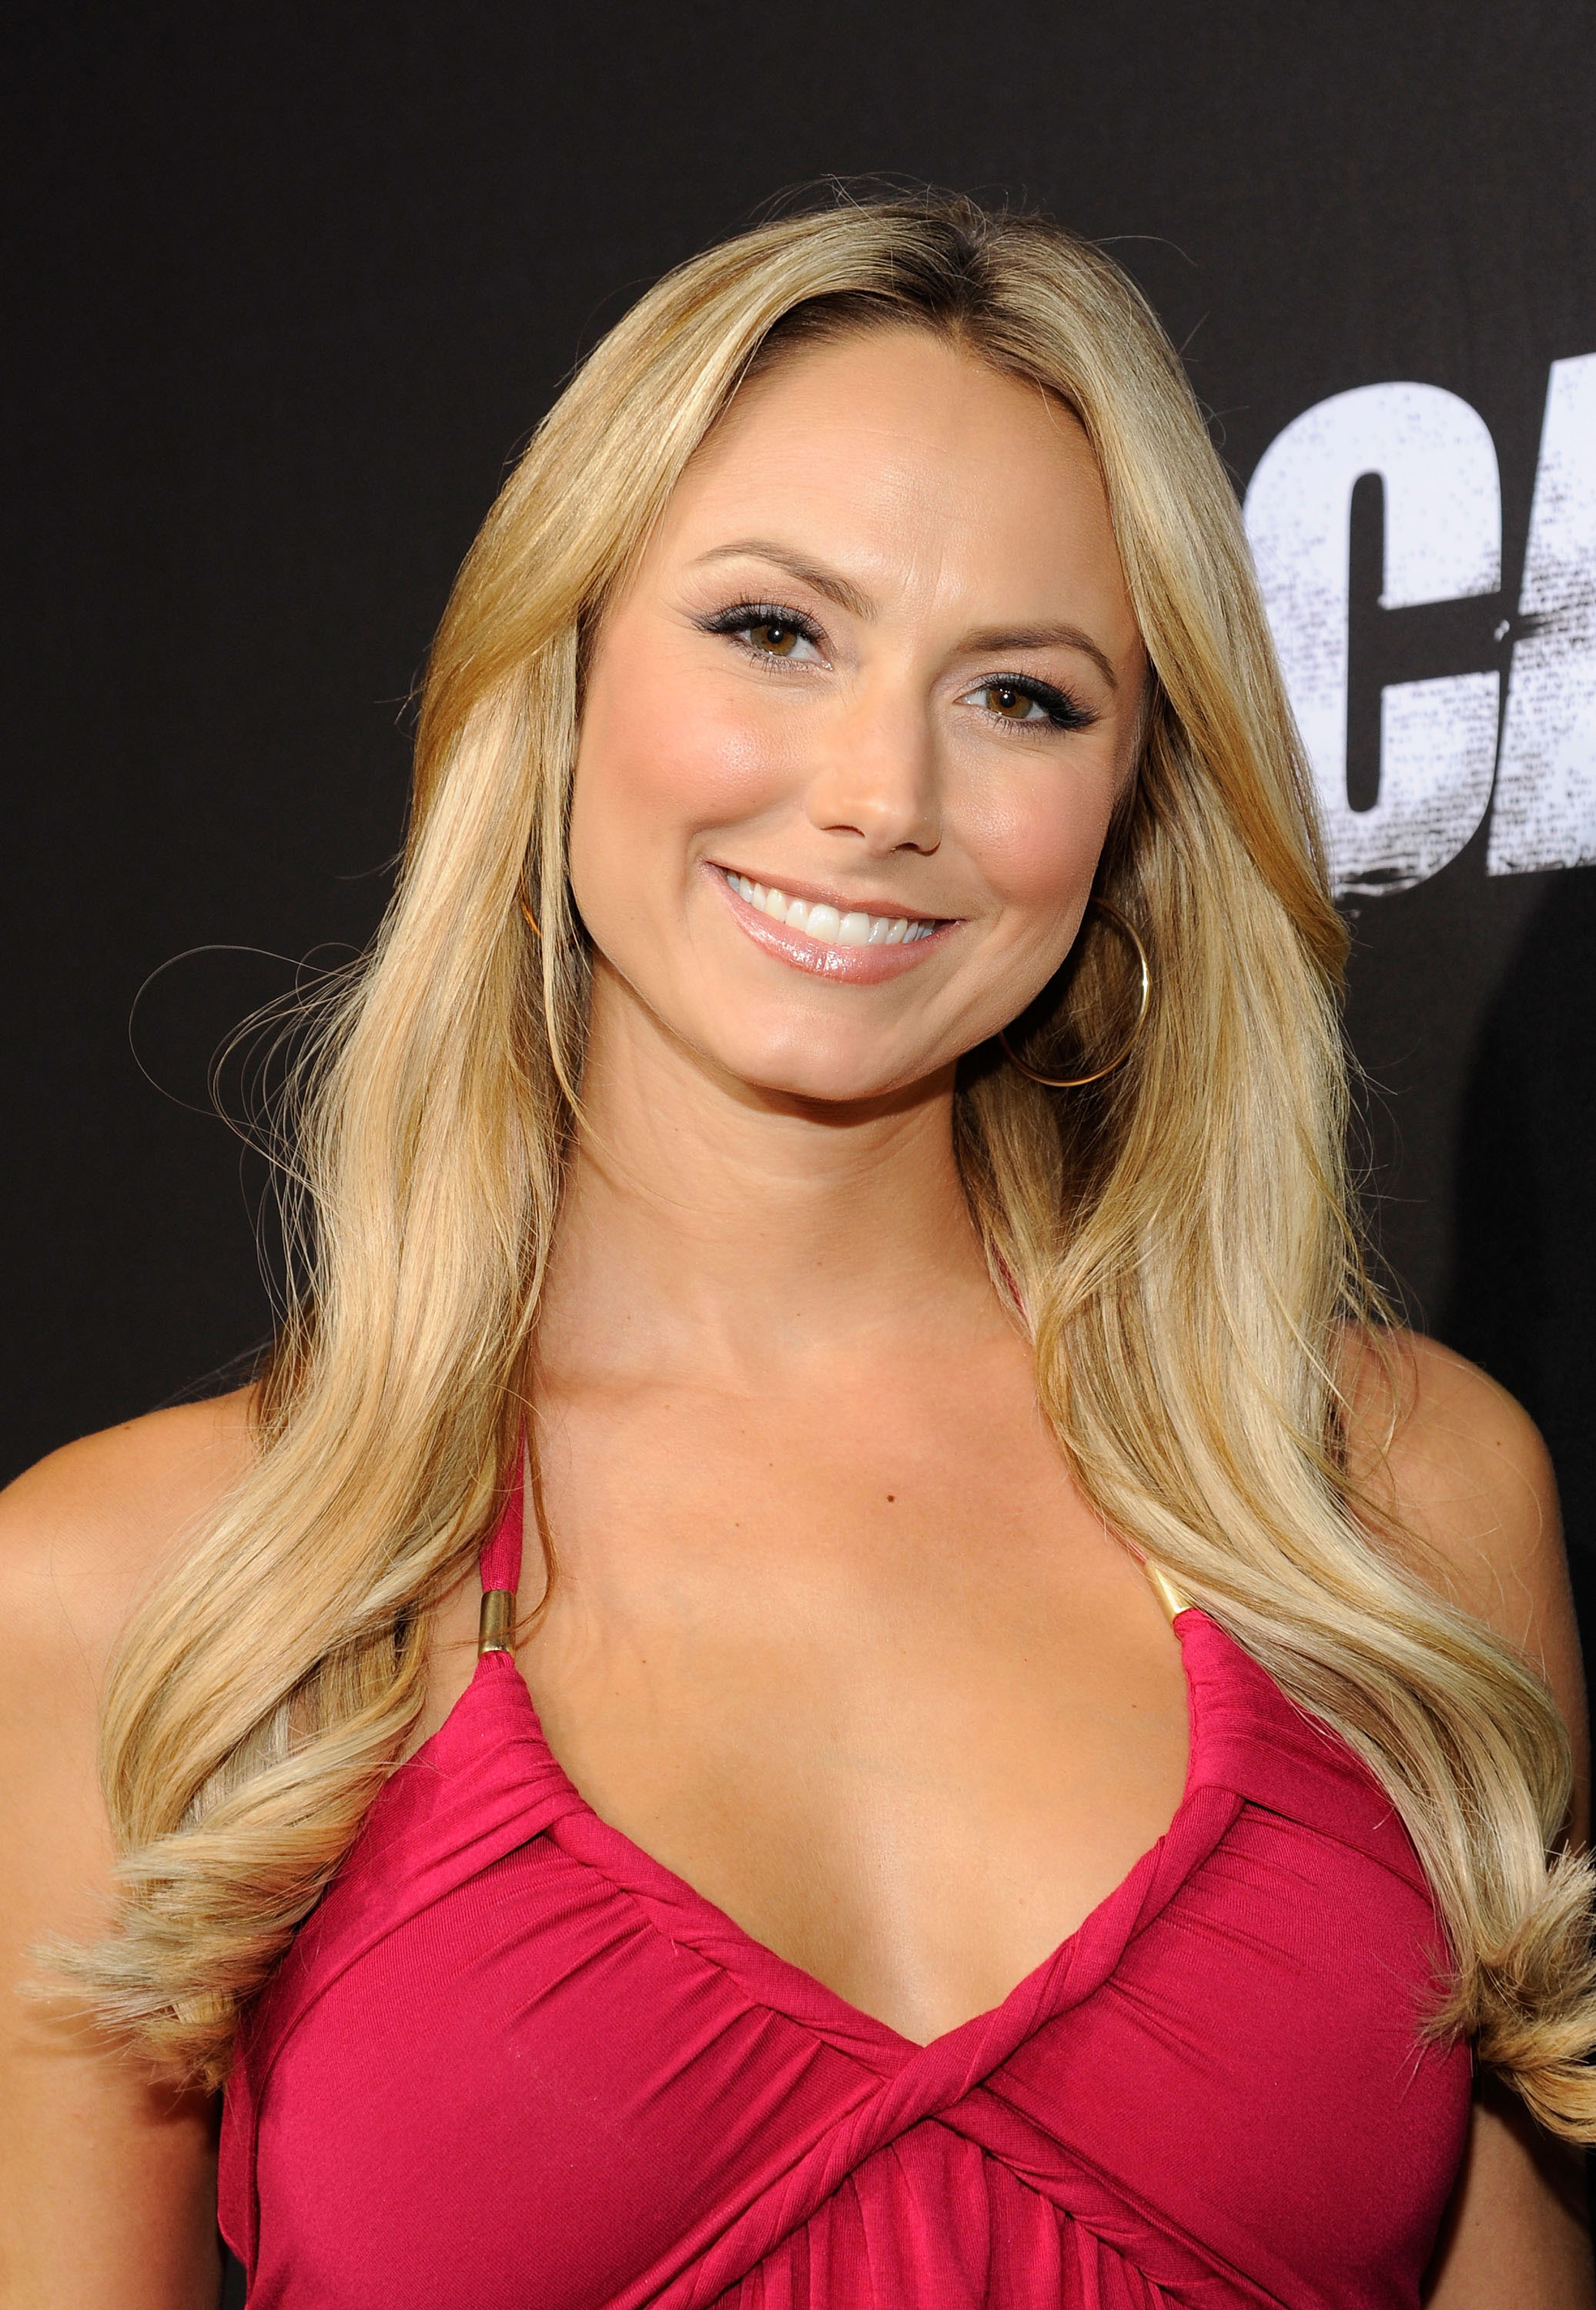 Stacy Keibler Xp Vista